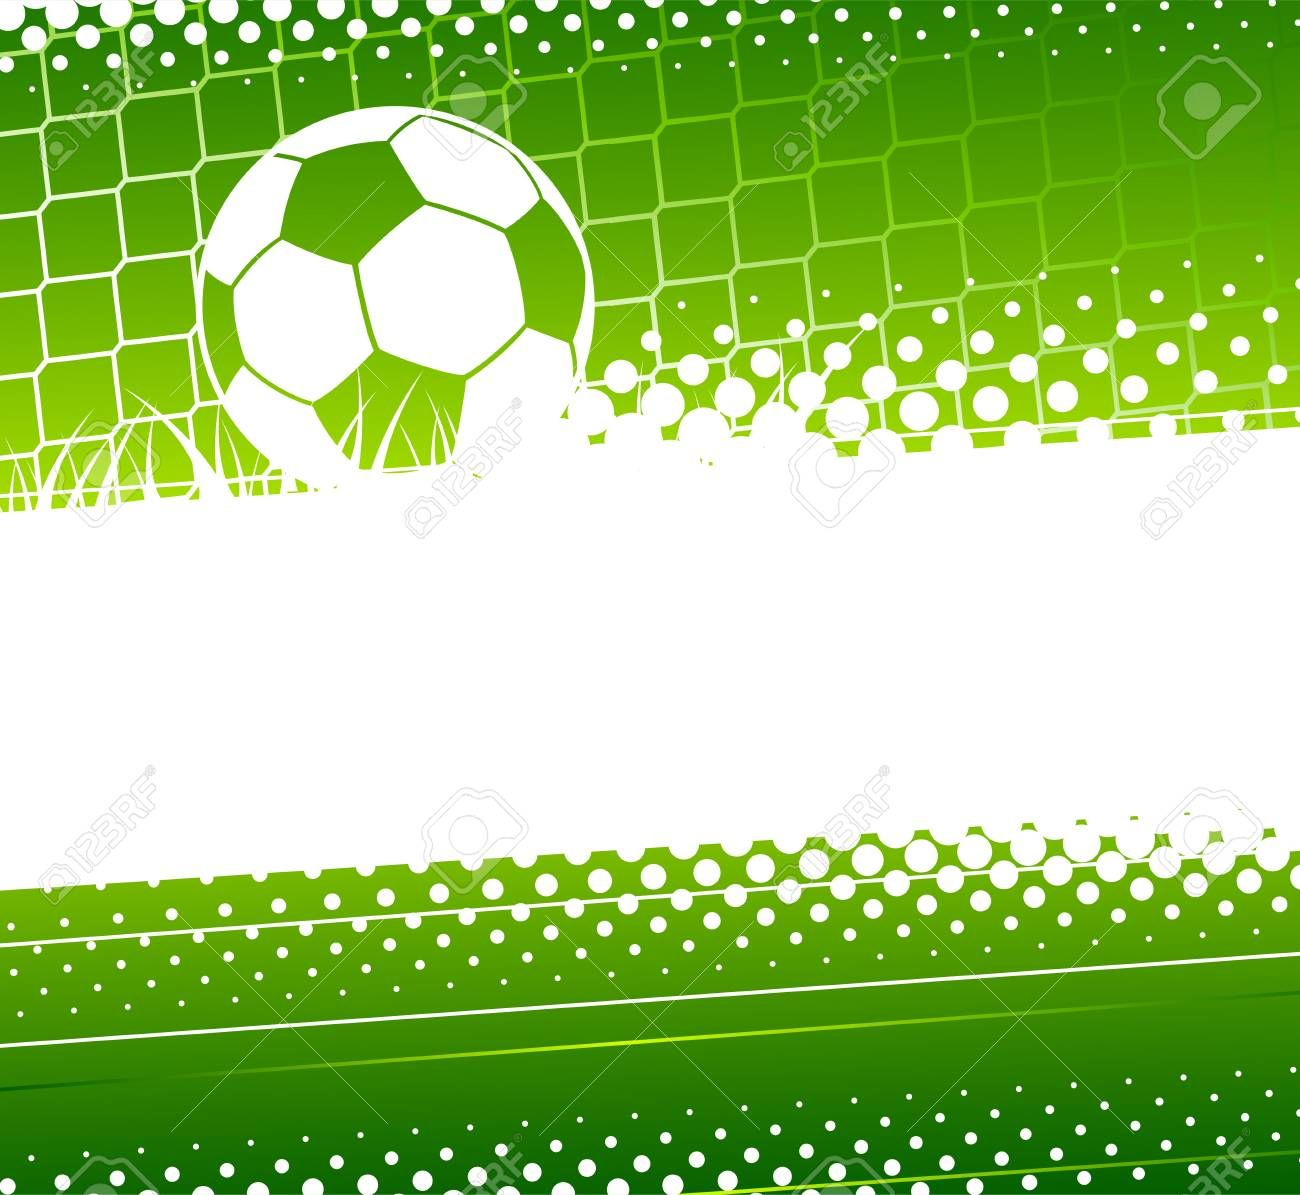 Abstract Soccer Background Soccer Ball And Gate Goalkeeper Illustration Aff Background Soccer Abstract Soccer Soccer Backgrounds Goalkeeper Soccer